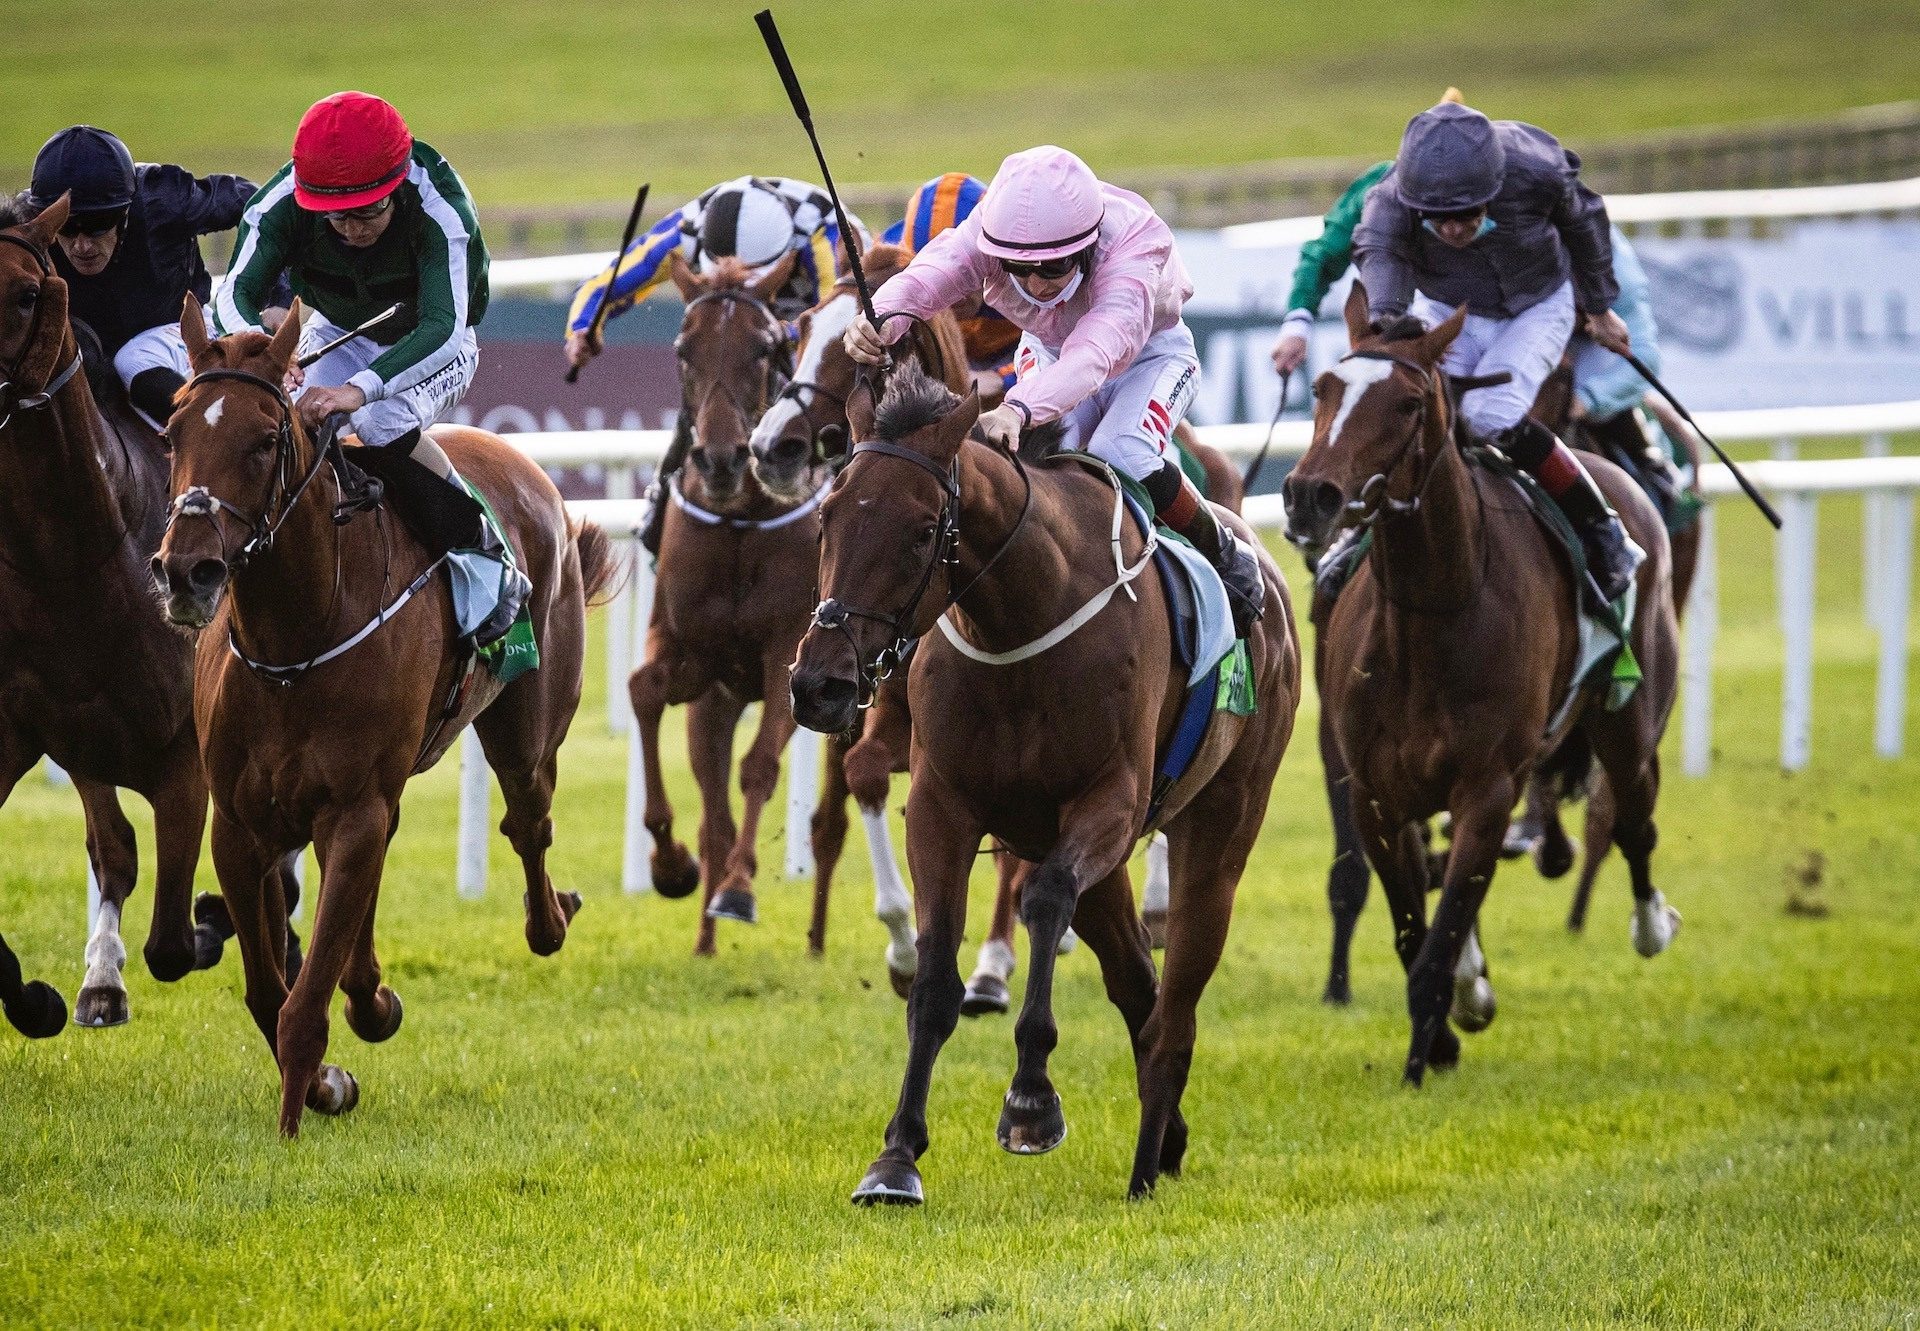 Even So (Camelot) Wins The Gr.1 Irish Oaks at the Curragh